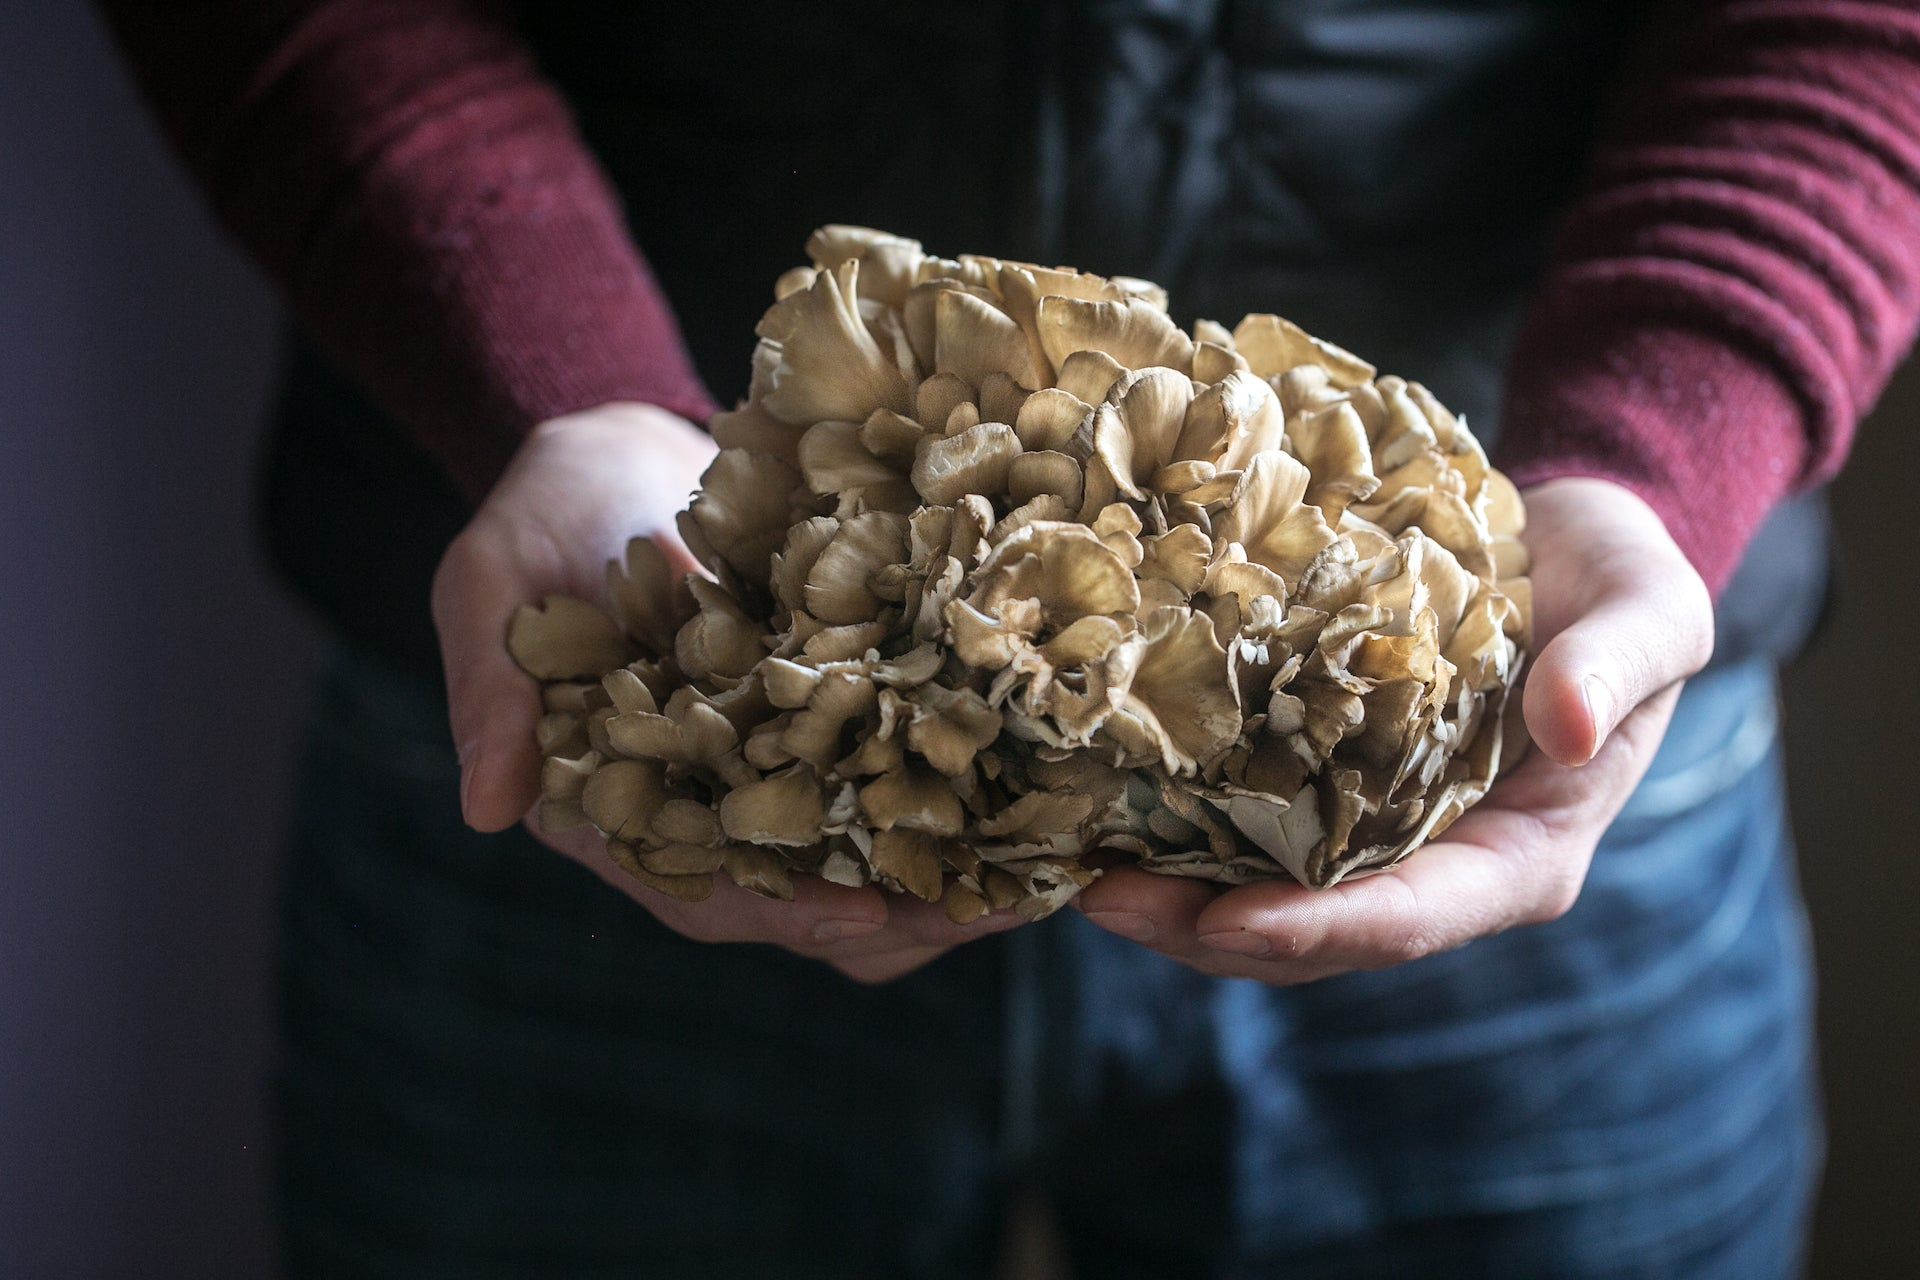 Man holding Mushroom King Farm's oyster mushrooms